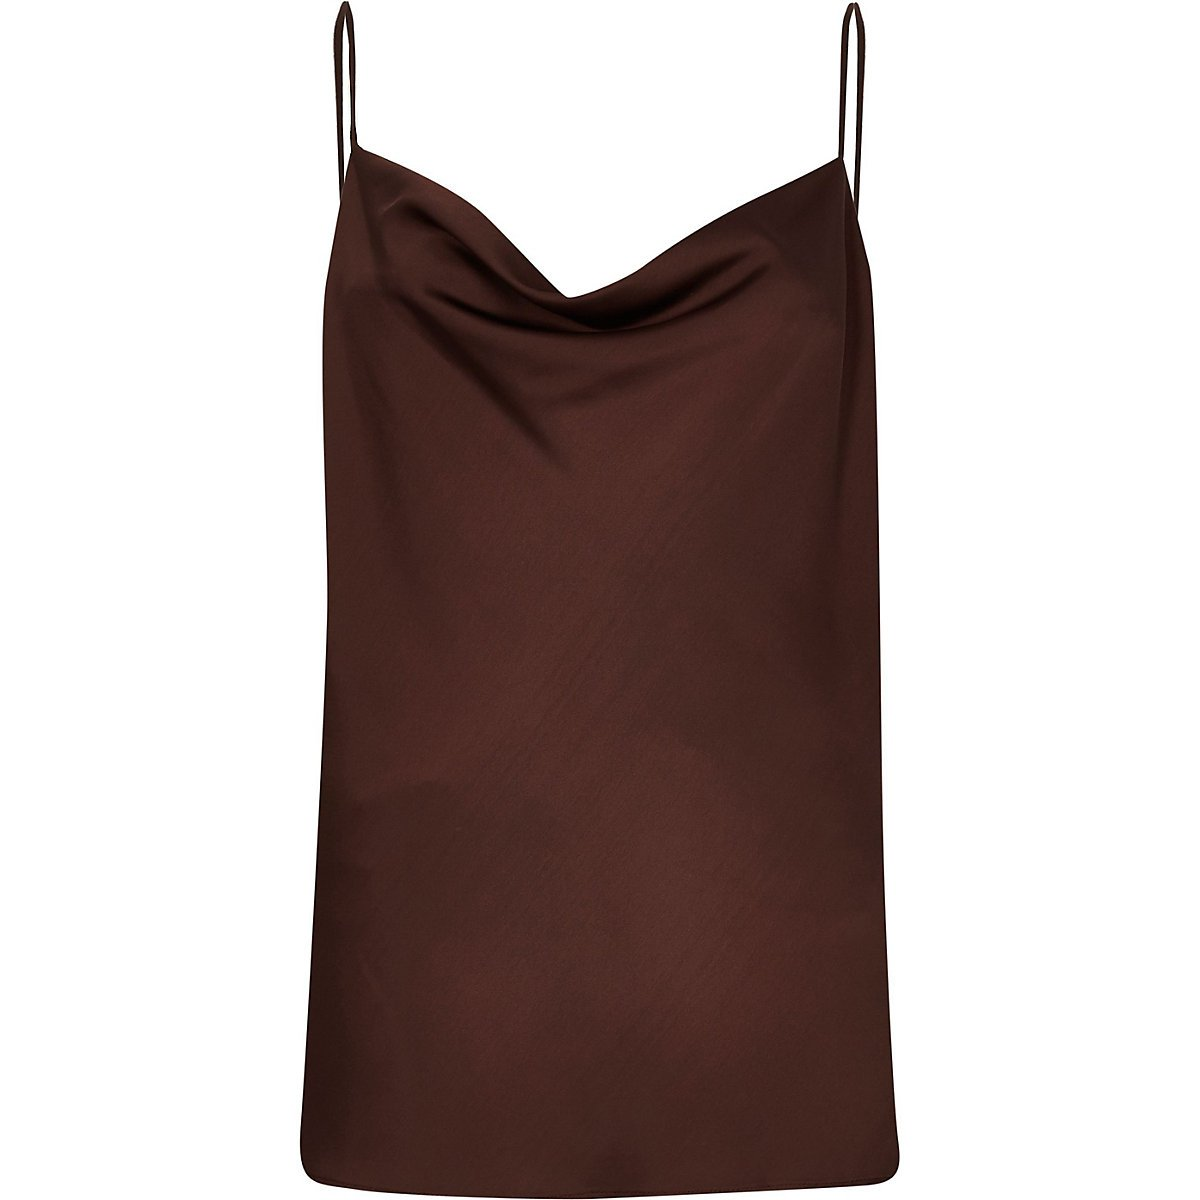 Brown cowl neck cami top - Cami / Sleeveless Tops - Tops - women